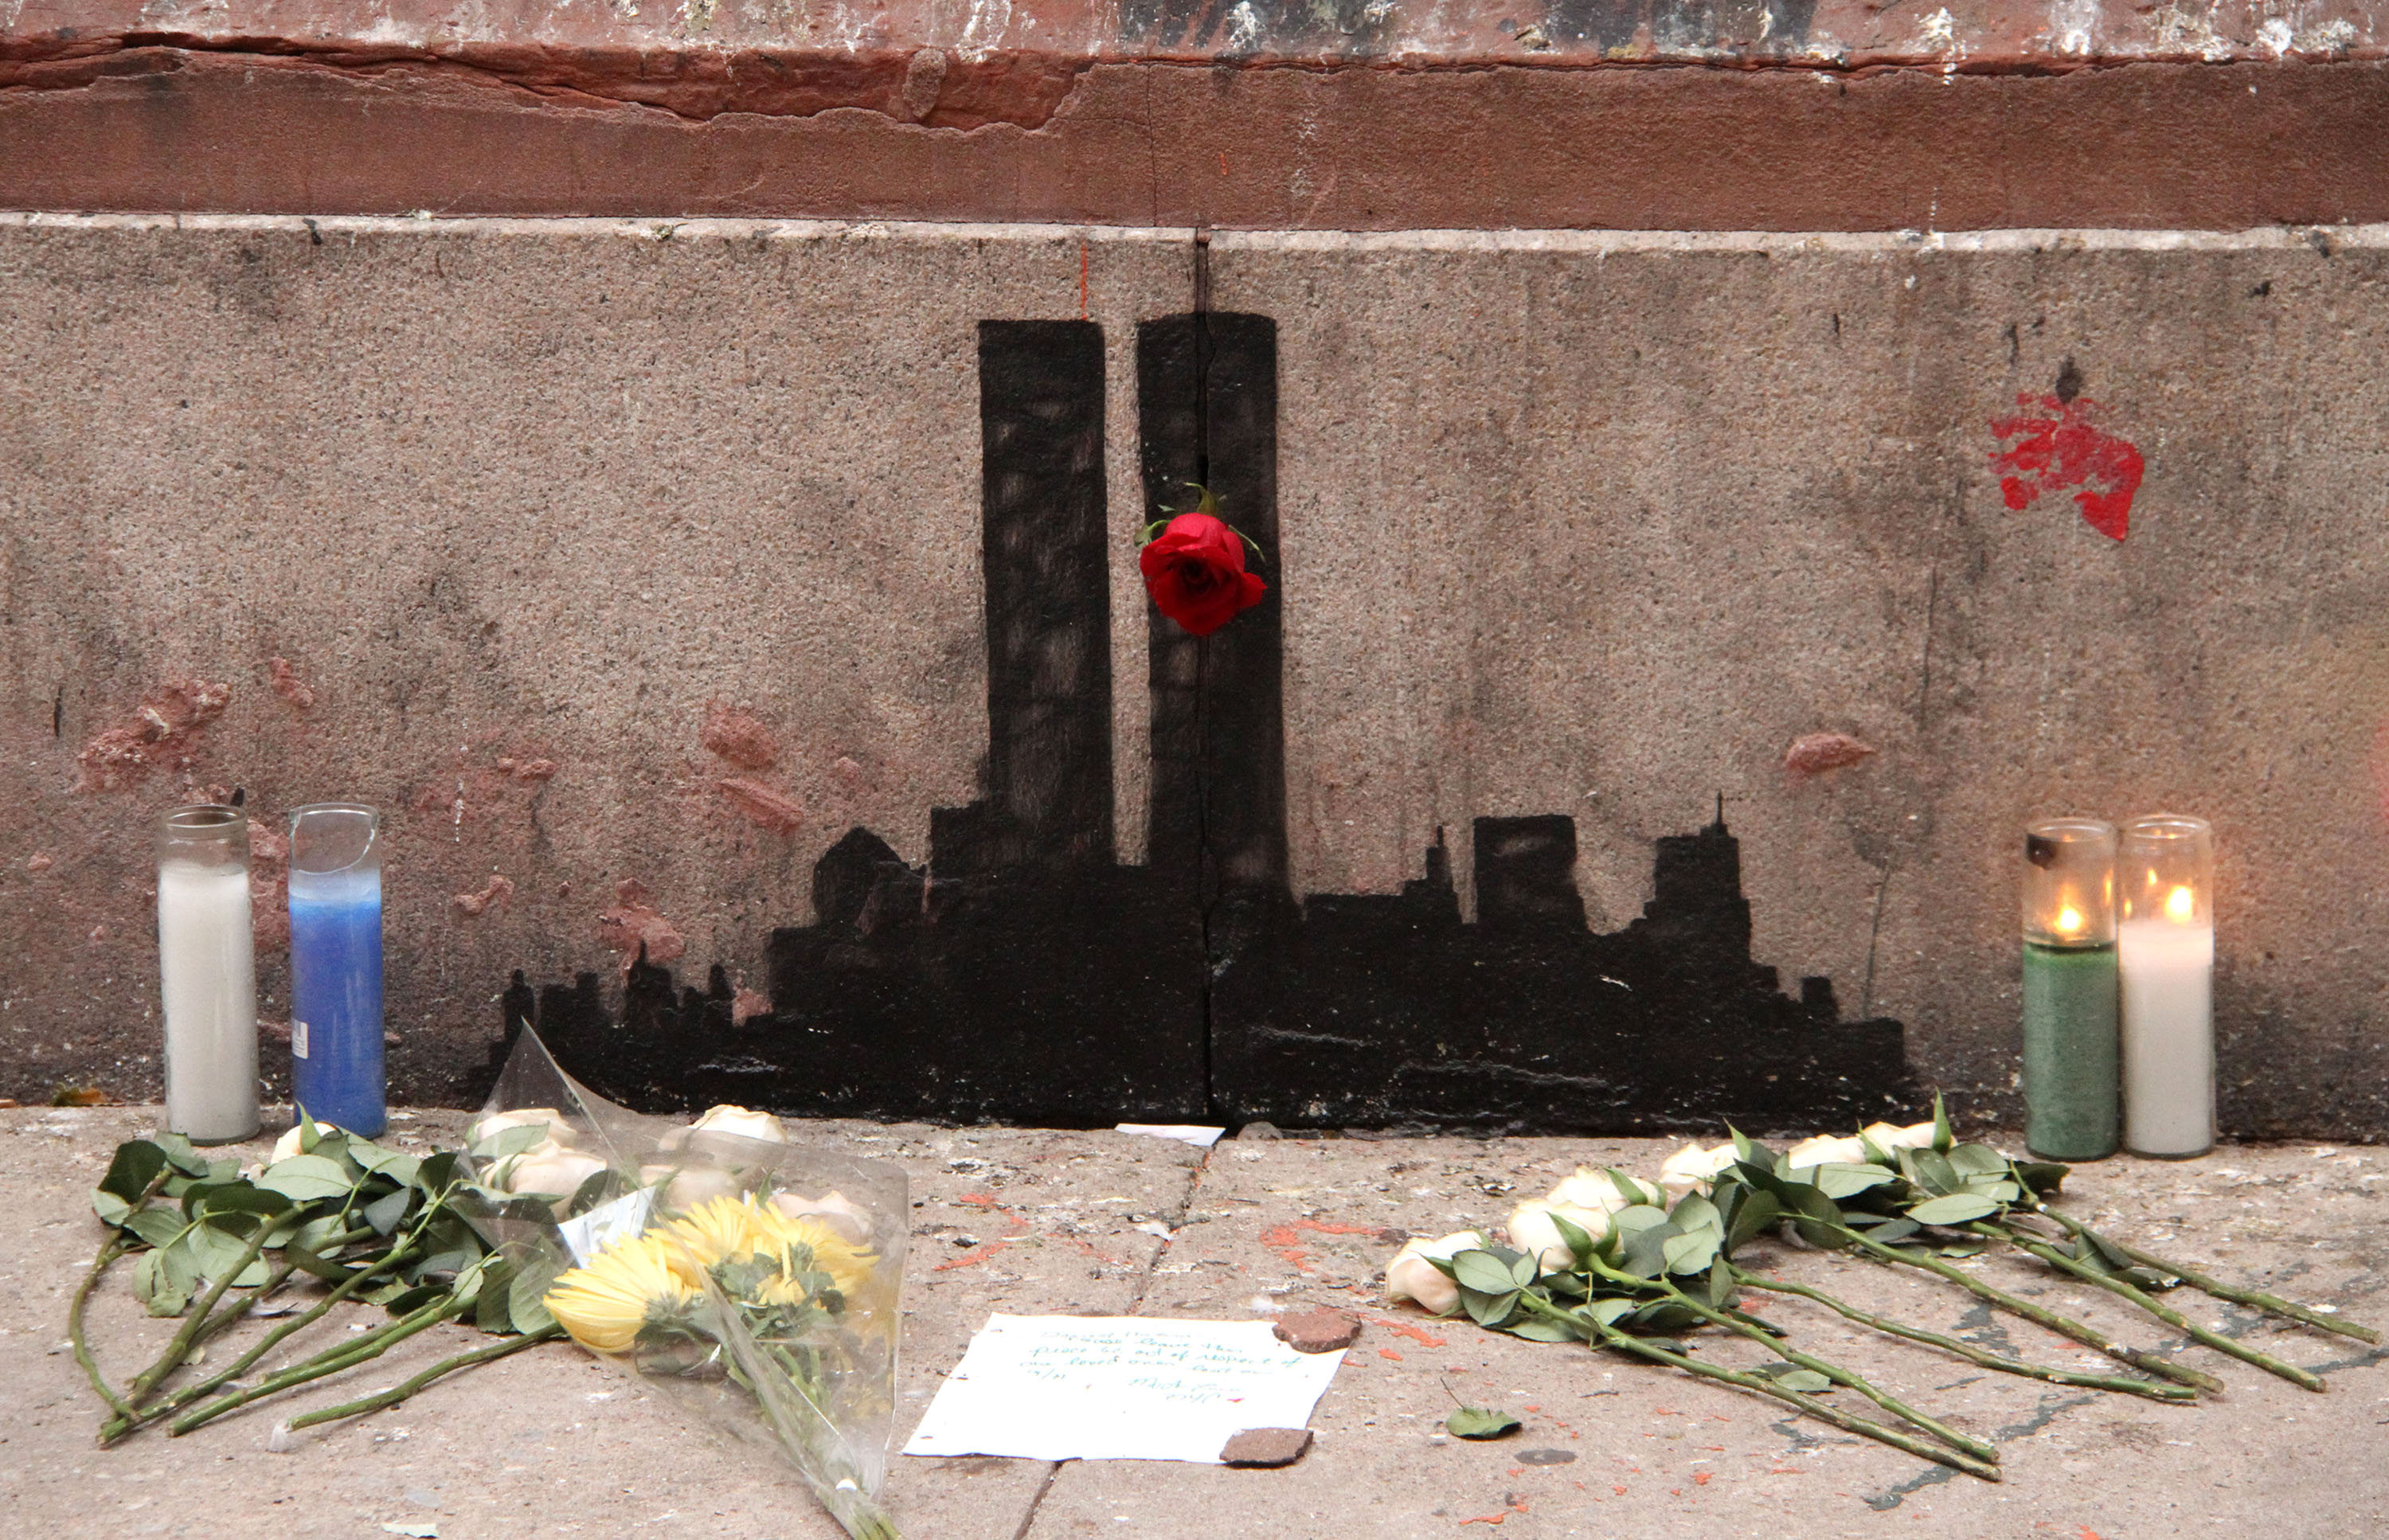 Banksy's 9/11 tribute featuring the Twin Towers located at Staple Street in TriBeCa, New York City, Oct. 16, 2013.